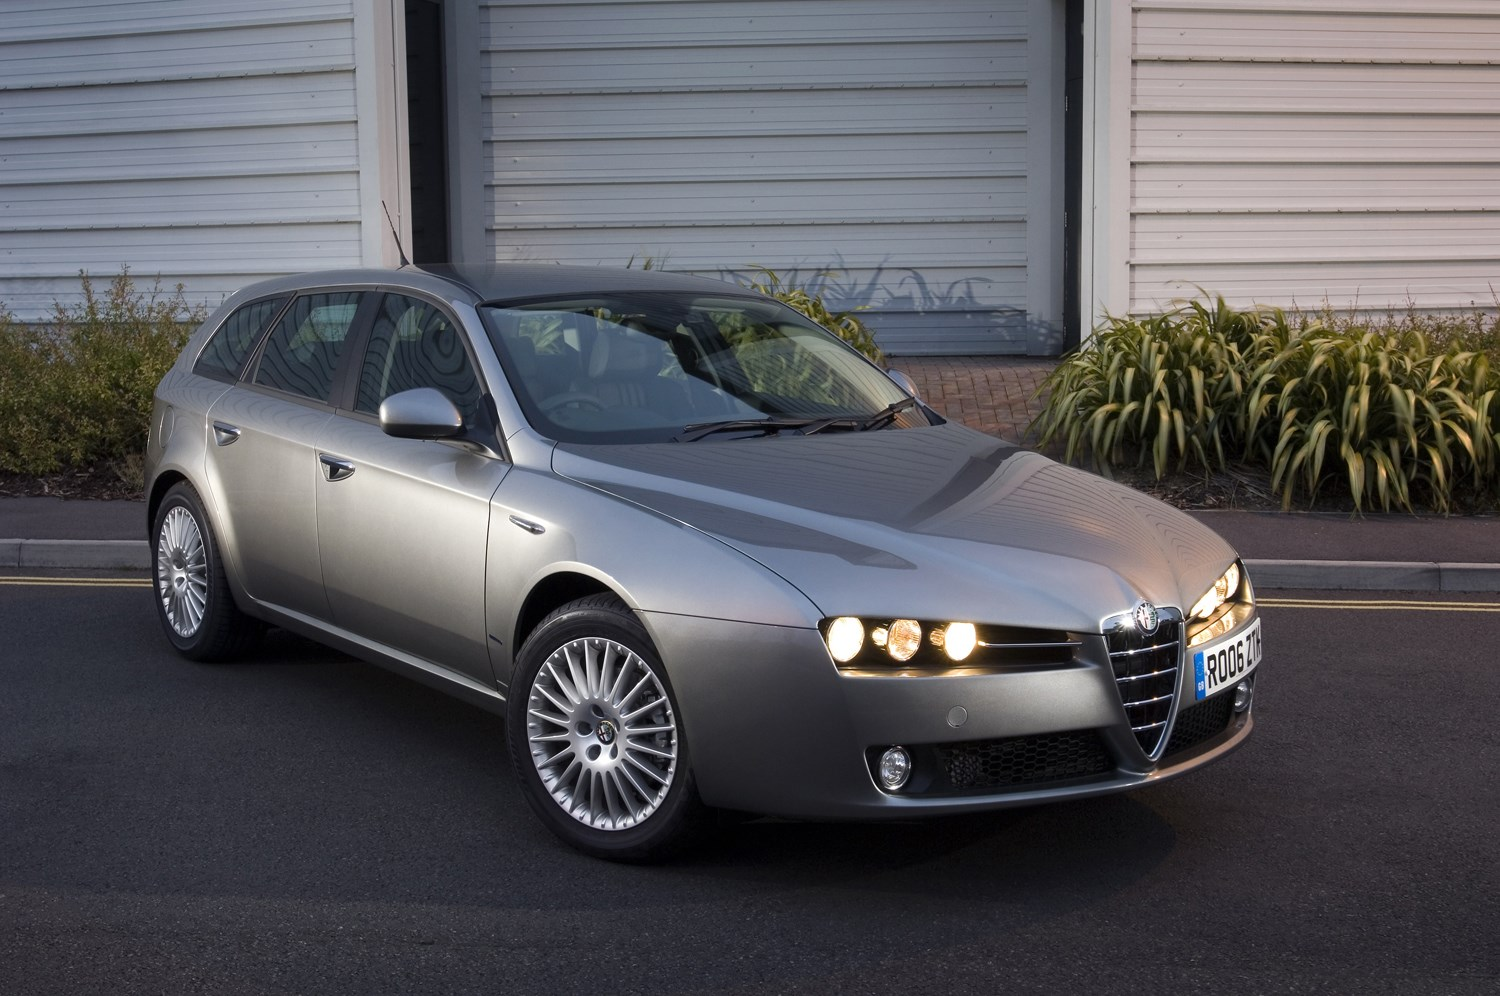 alfa romeo 159 sportwagon review 2006 2011 parkers. Black Bedroom Furniture Sets. Home Design Ideas